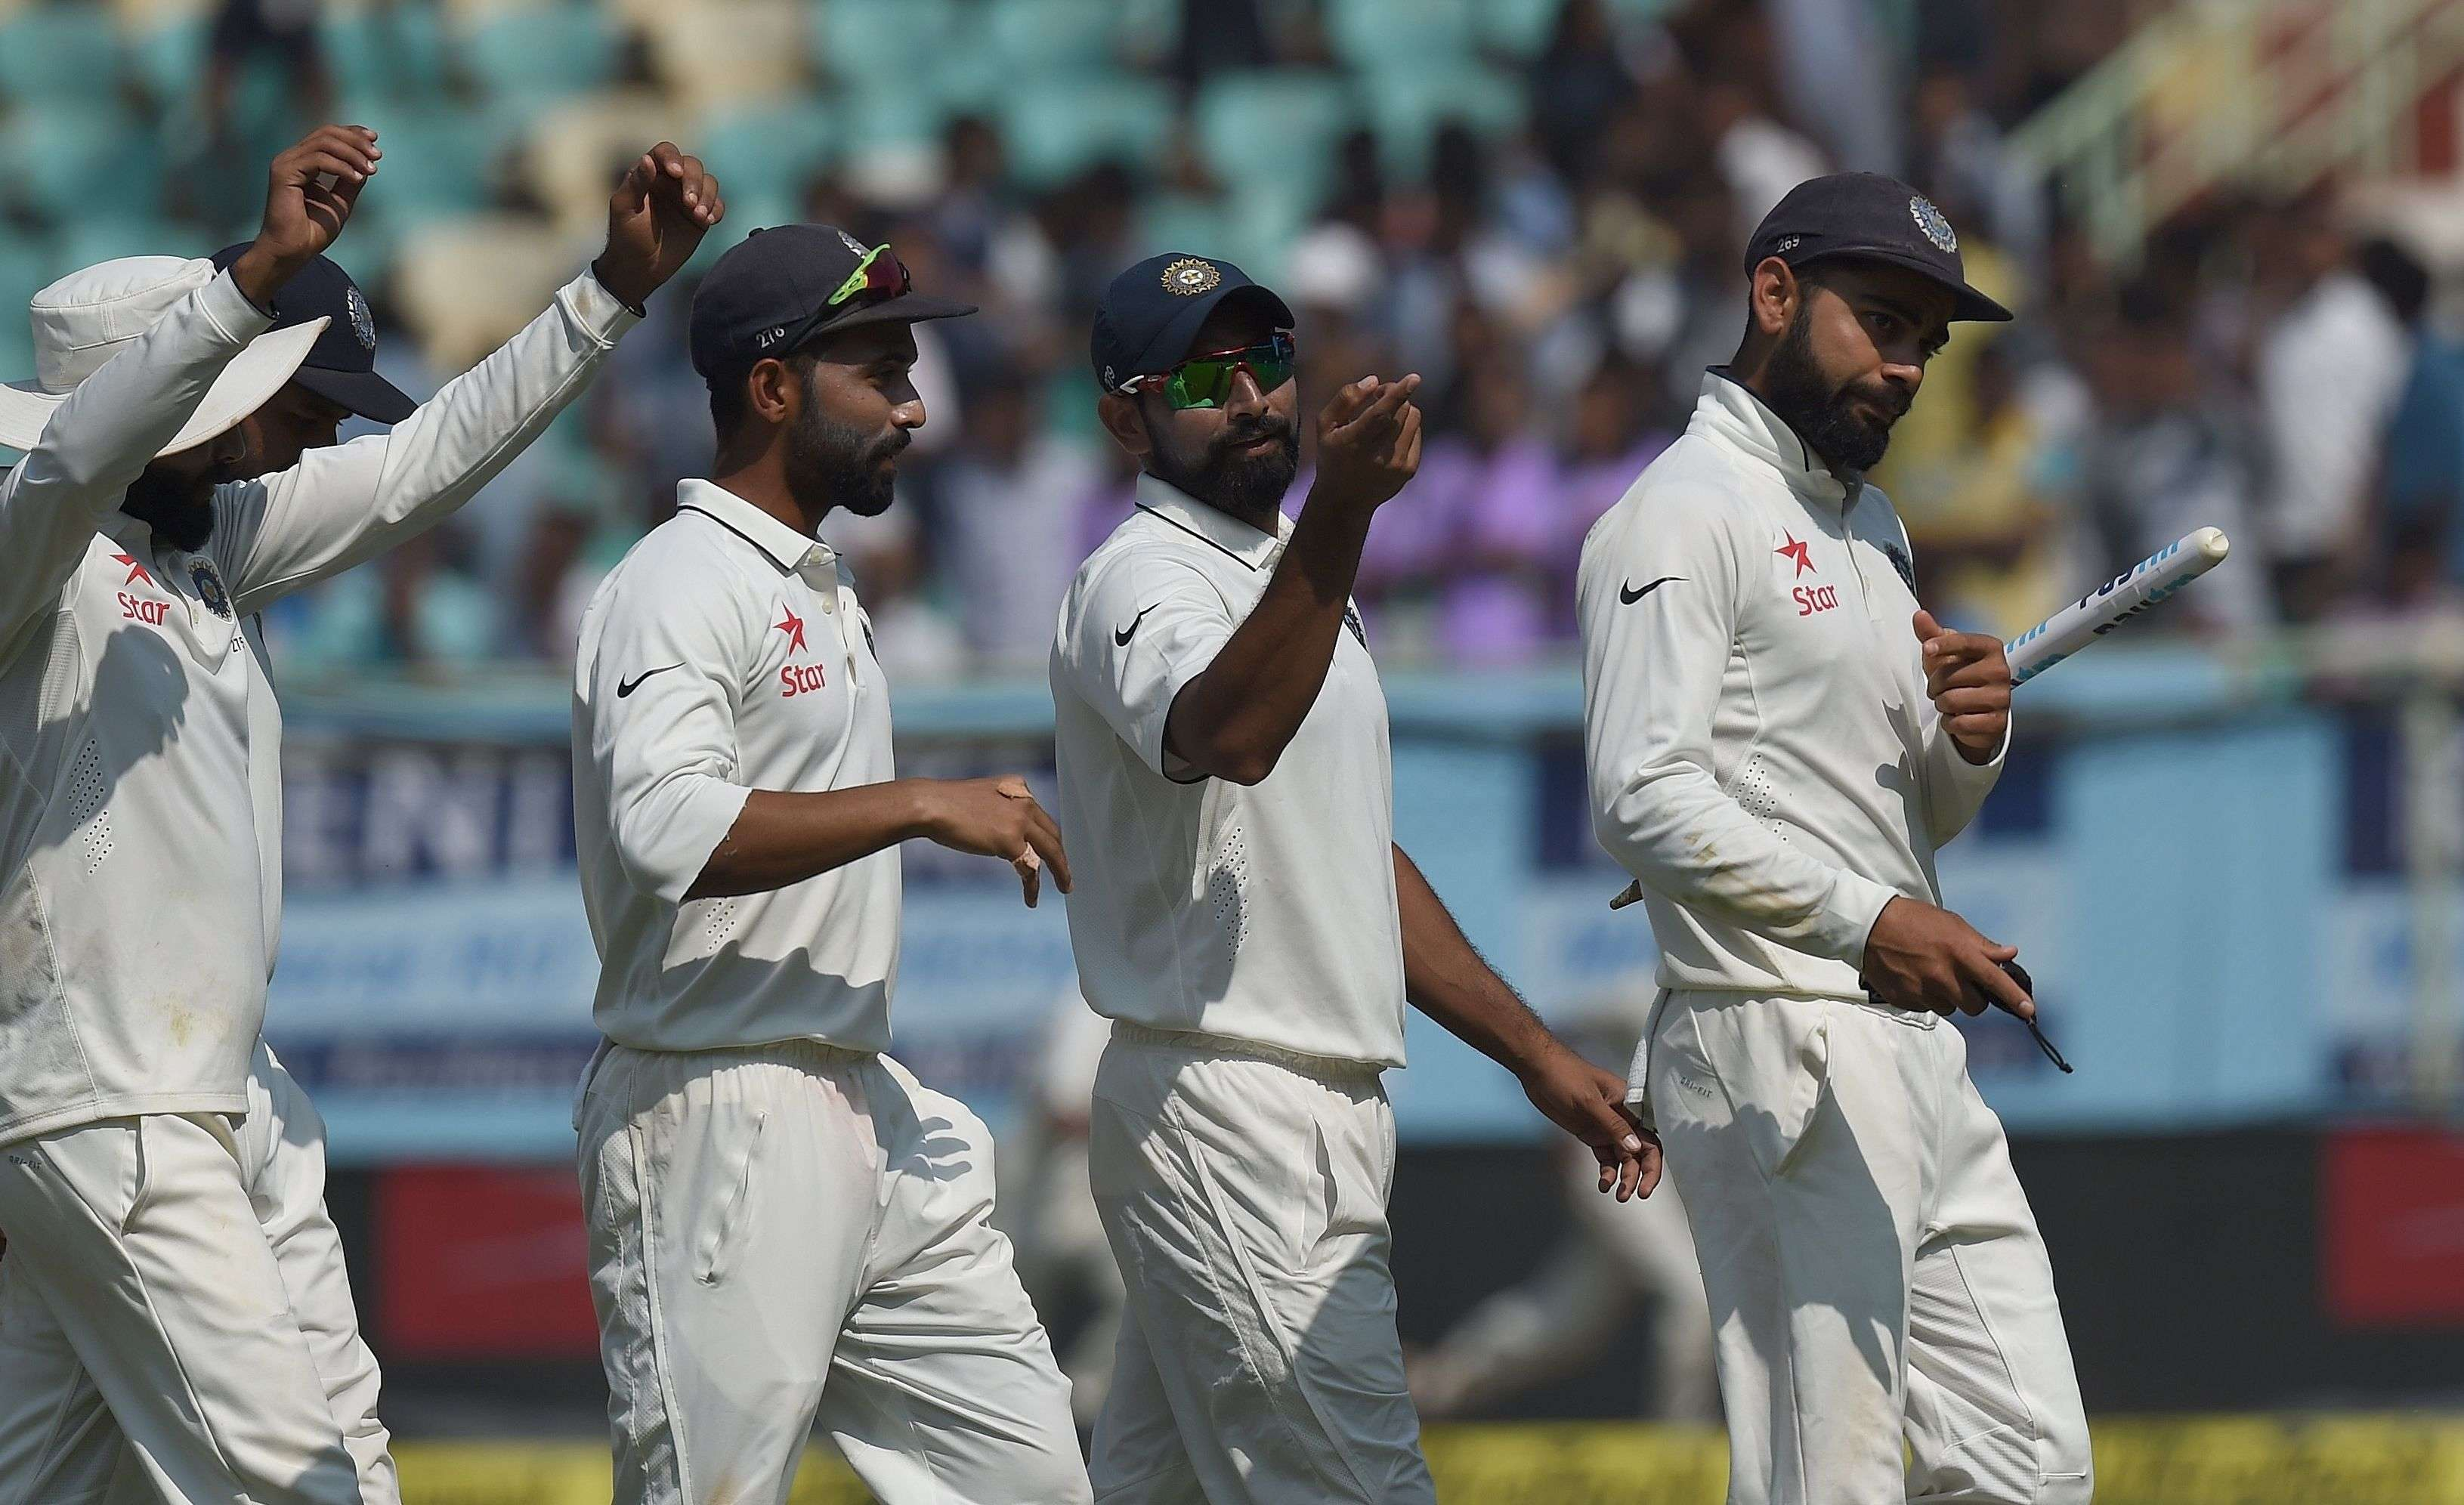 Indian captain Virat Kohli (R) walks back to the pavillion with teammates after victory over England during the last day of the second Test cricket match between India and England at the Dr. Y.S. Rajasekhara Reddy ACA-VDCA Cricket Stadium in Vishakhapatnam on November 21, 2016. ----IMAGE RESTRICTED TO EDITORIAL USE - STRICTLY NO COMMERCIAL USE----- / AFP PHOTO / PRAKASH SINGH / ----IMAGE RESTRICTED TO EDITORIAL USE - STRICTLY NO COMMERCIAL USE----- / GETTYOUT